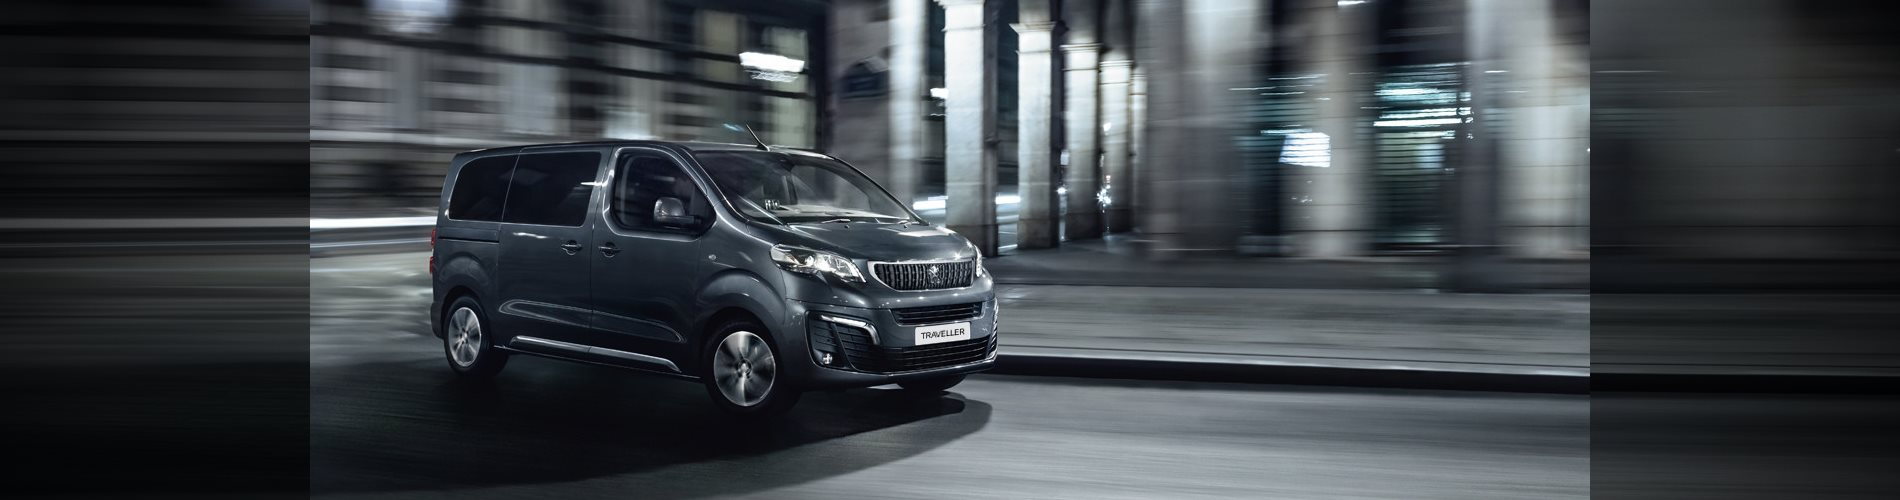 New Peugeot Traveller Offer at Wycliffe Peugeot Rugby